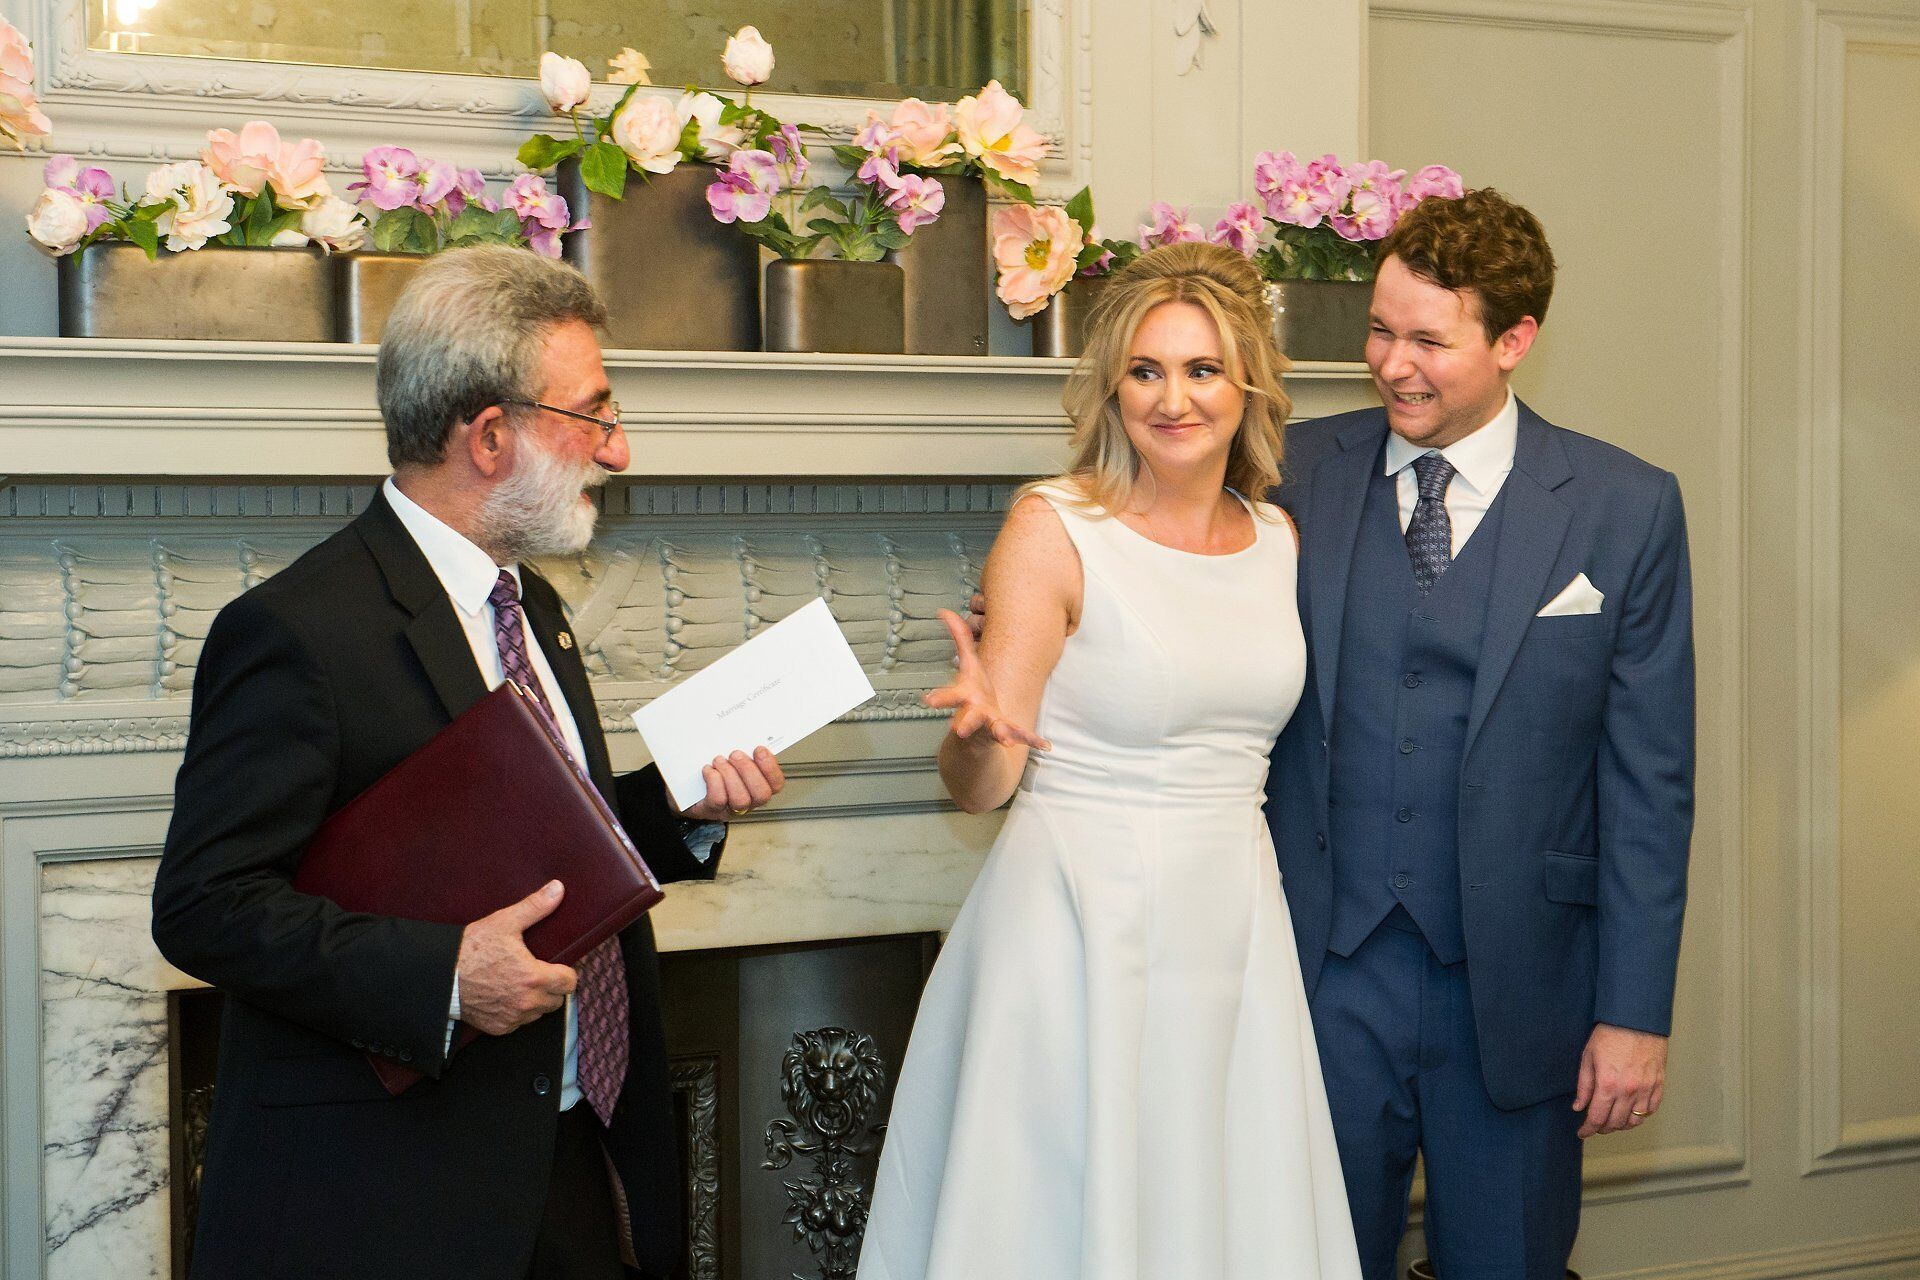 old marylebone town hall wedding photographer emma duggan captures a bride showing her eagerness to receive her marriage certificate from westminster register office superintendent registrar